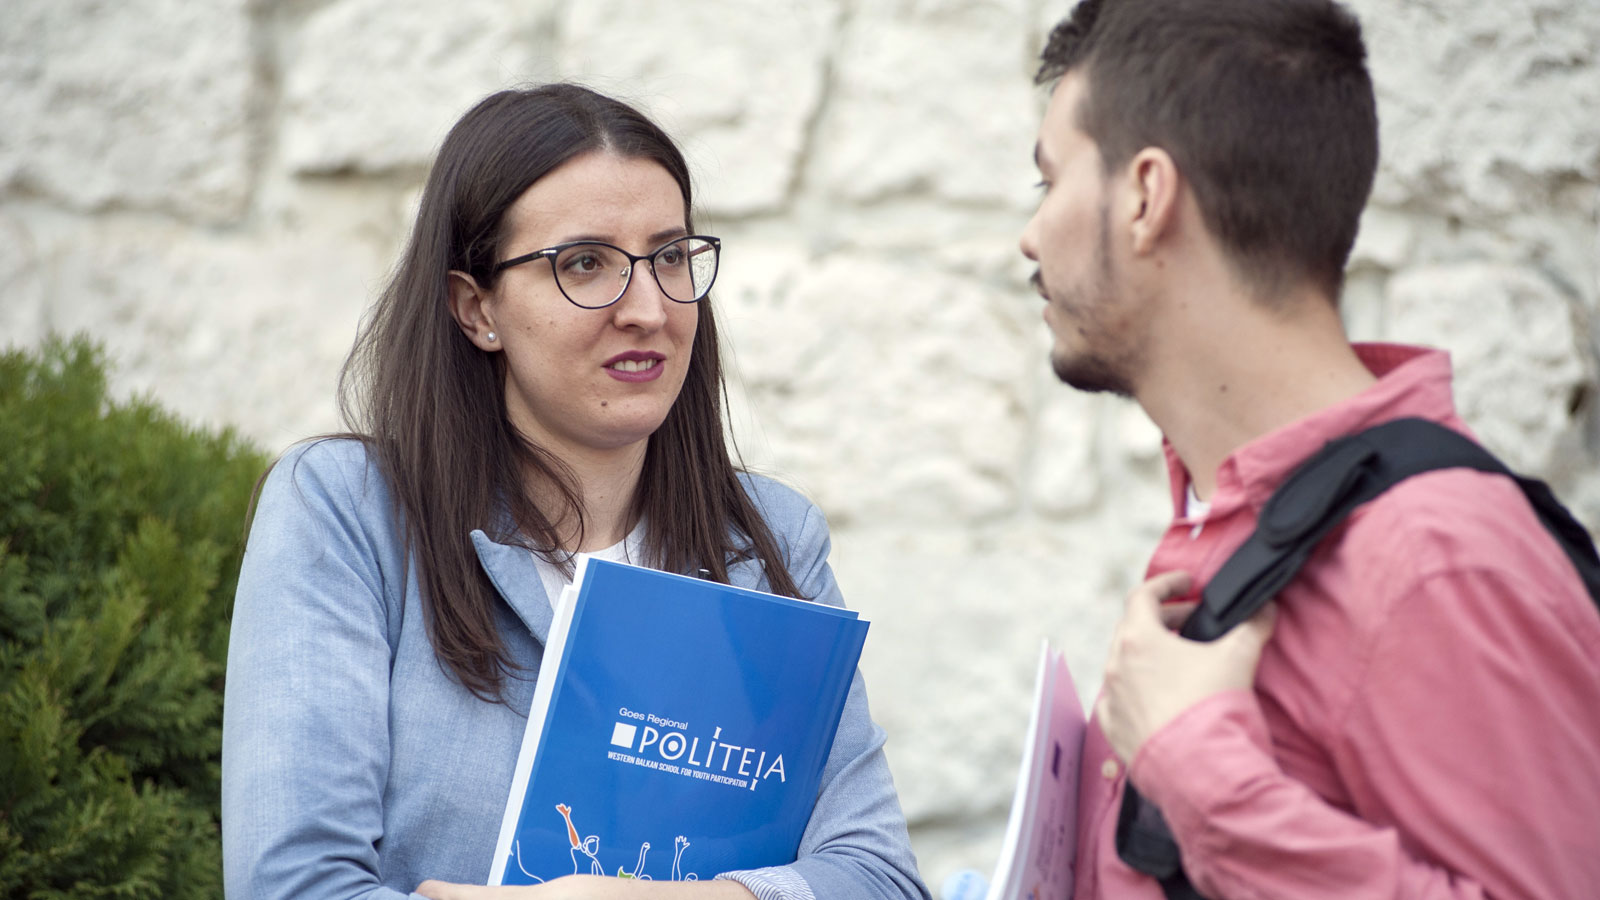 Students from Western Balkans Ready to Actively Engage in Reforms